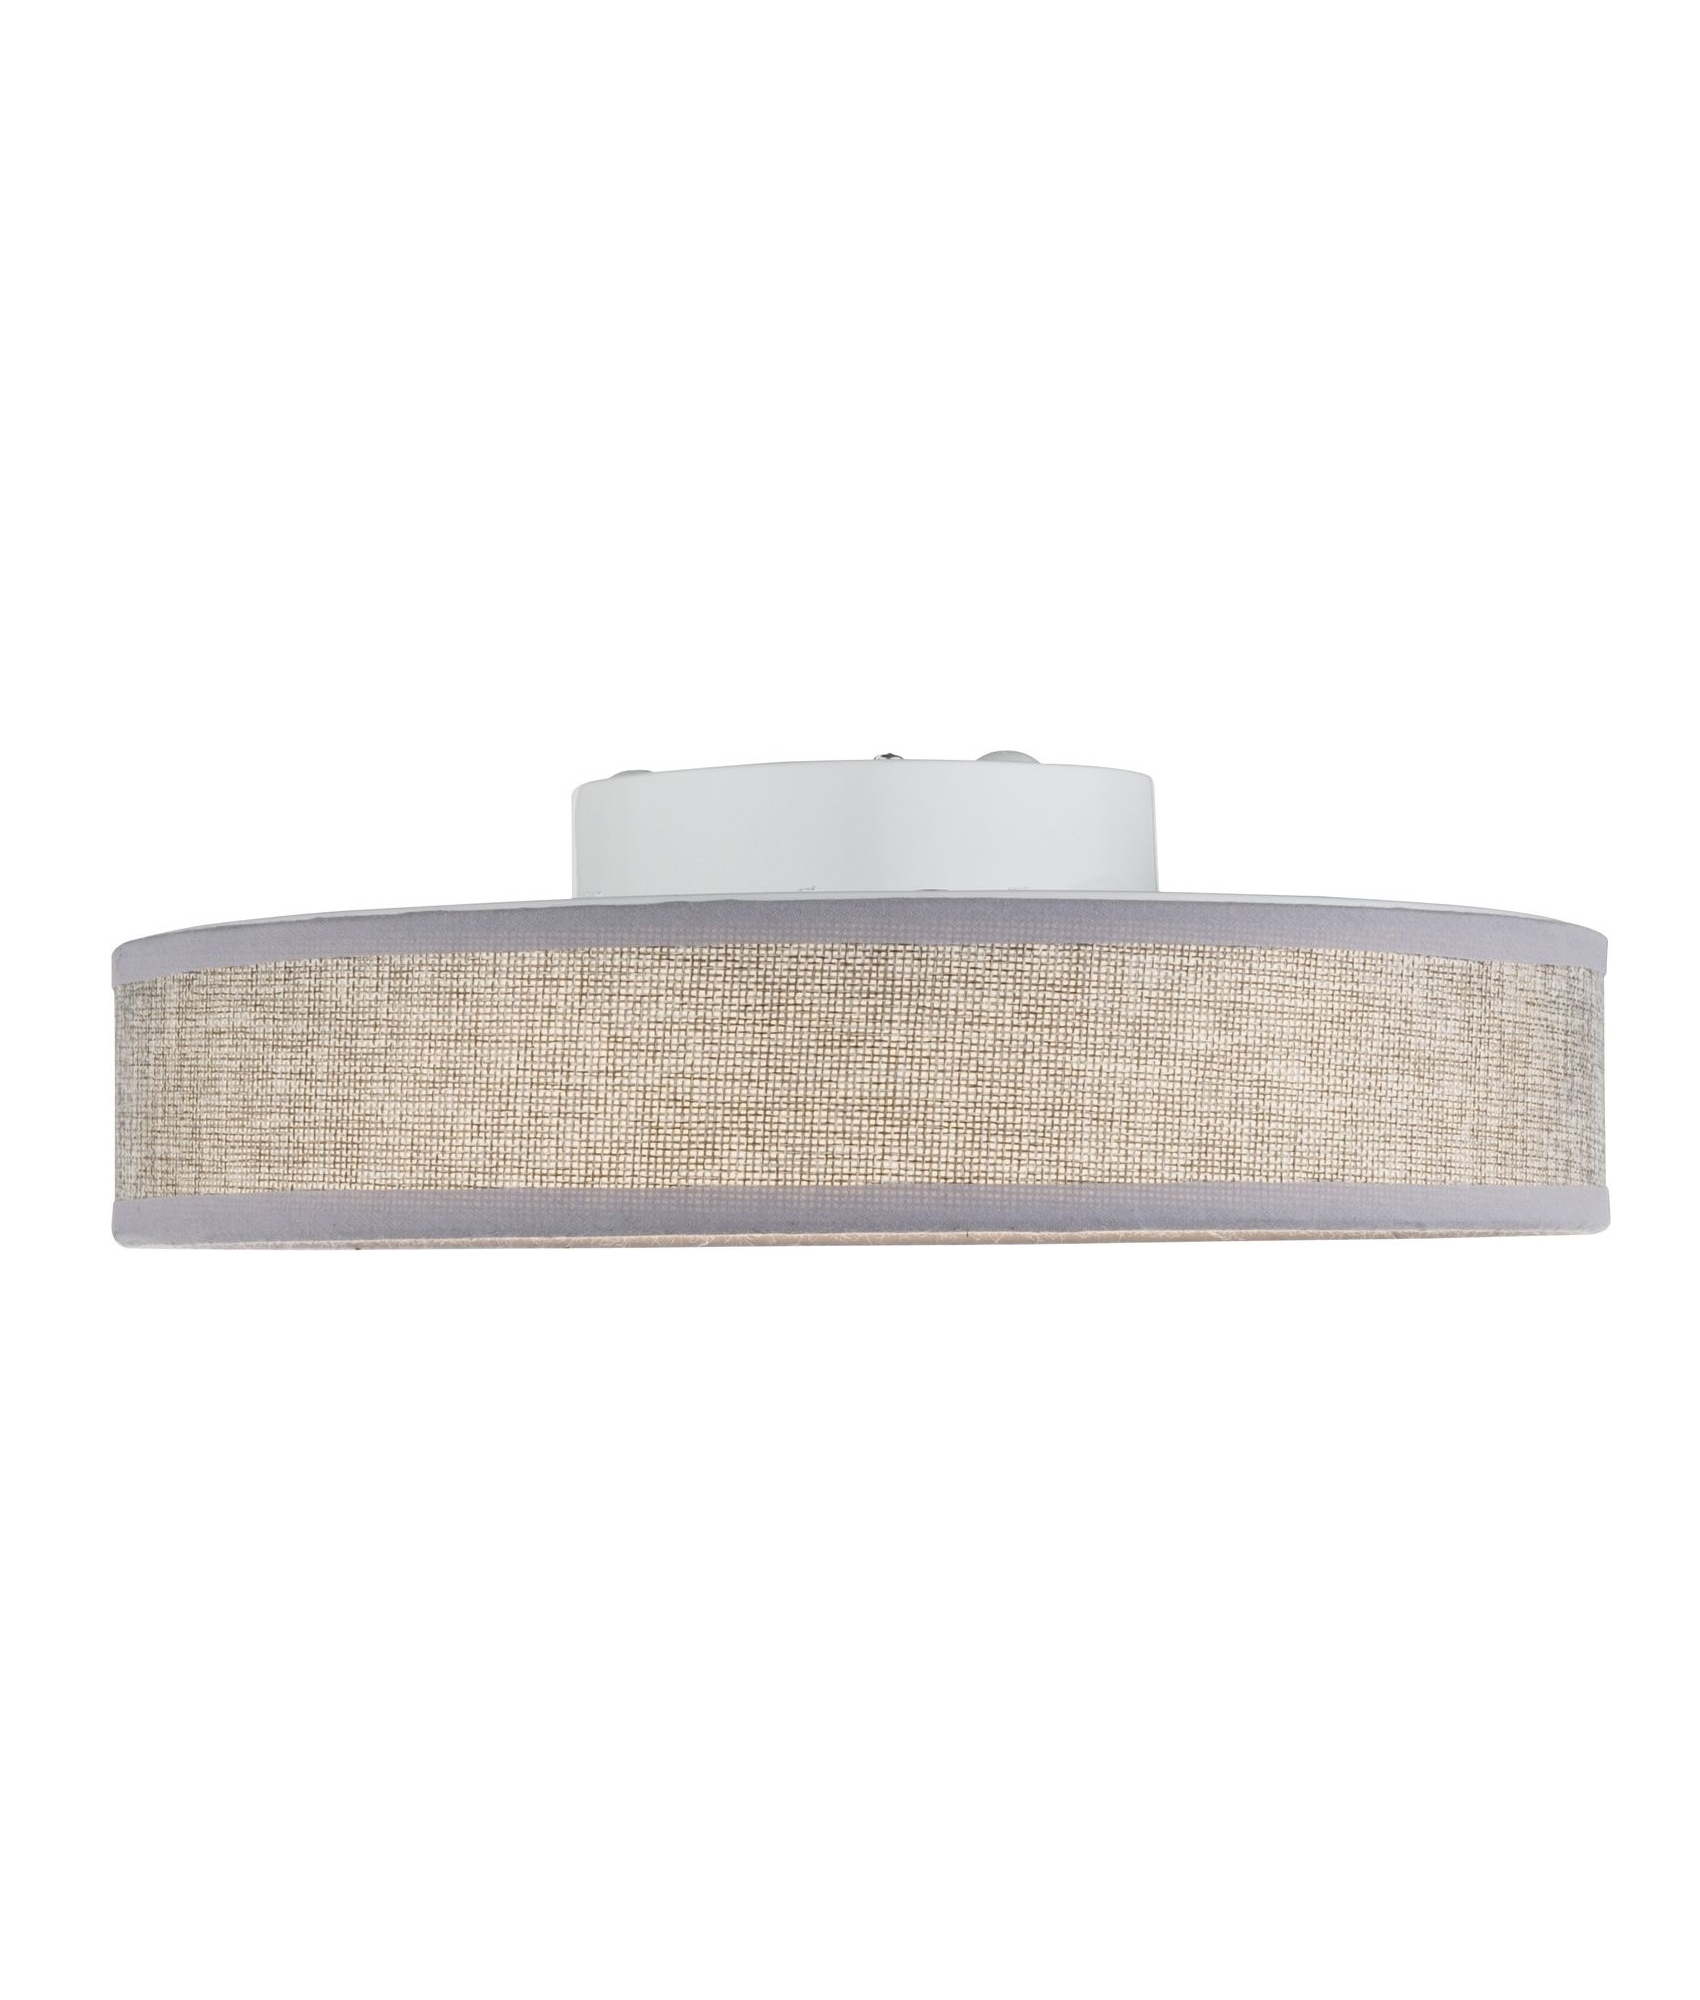 insight fixture light drum black crystal lamps fixtures kitchen ceiling chandelier lights wood most cool